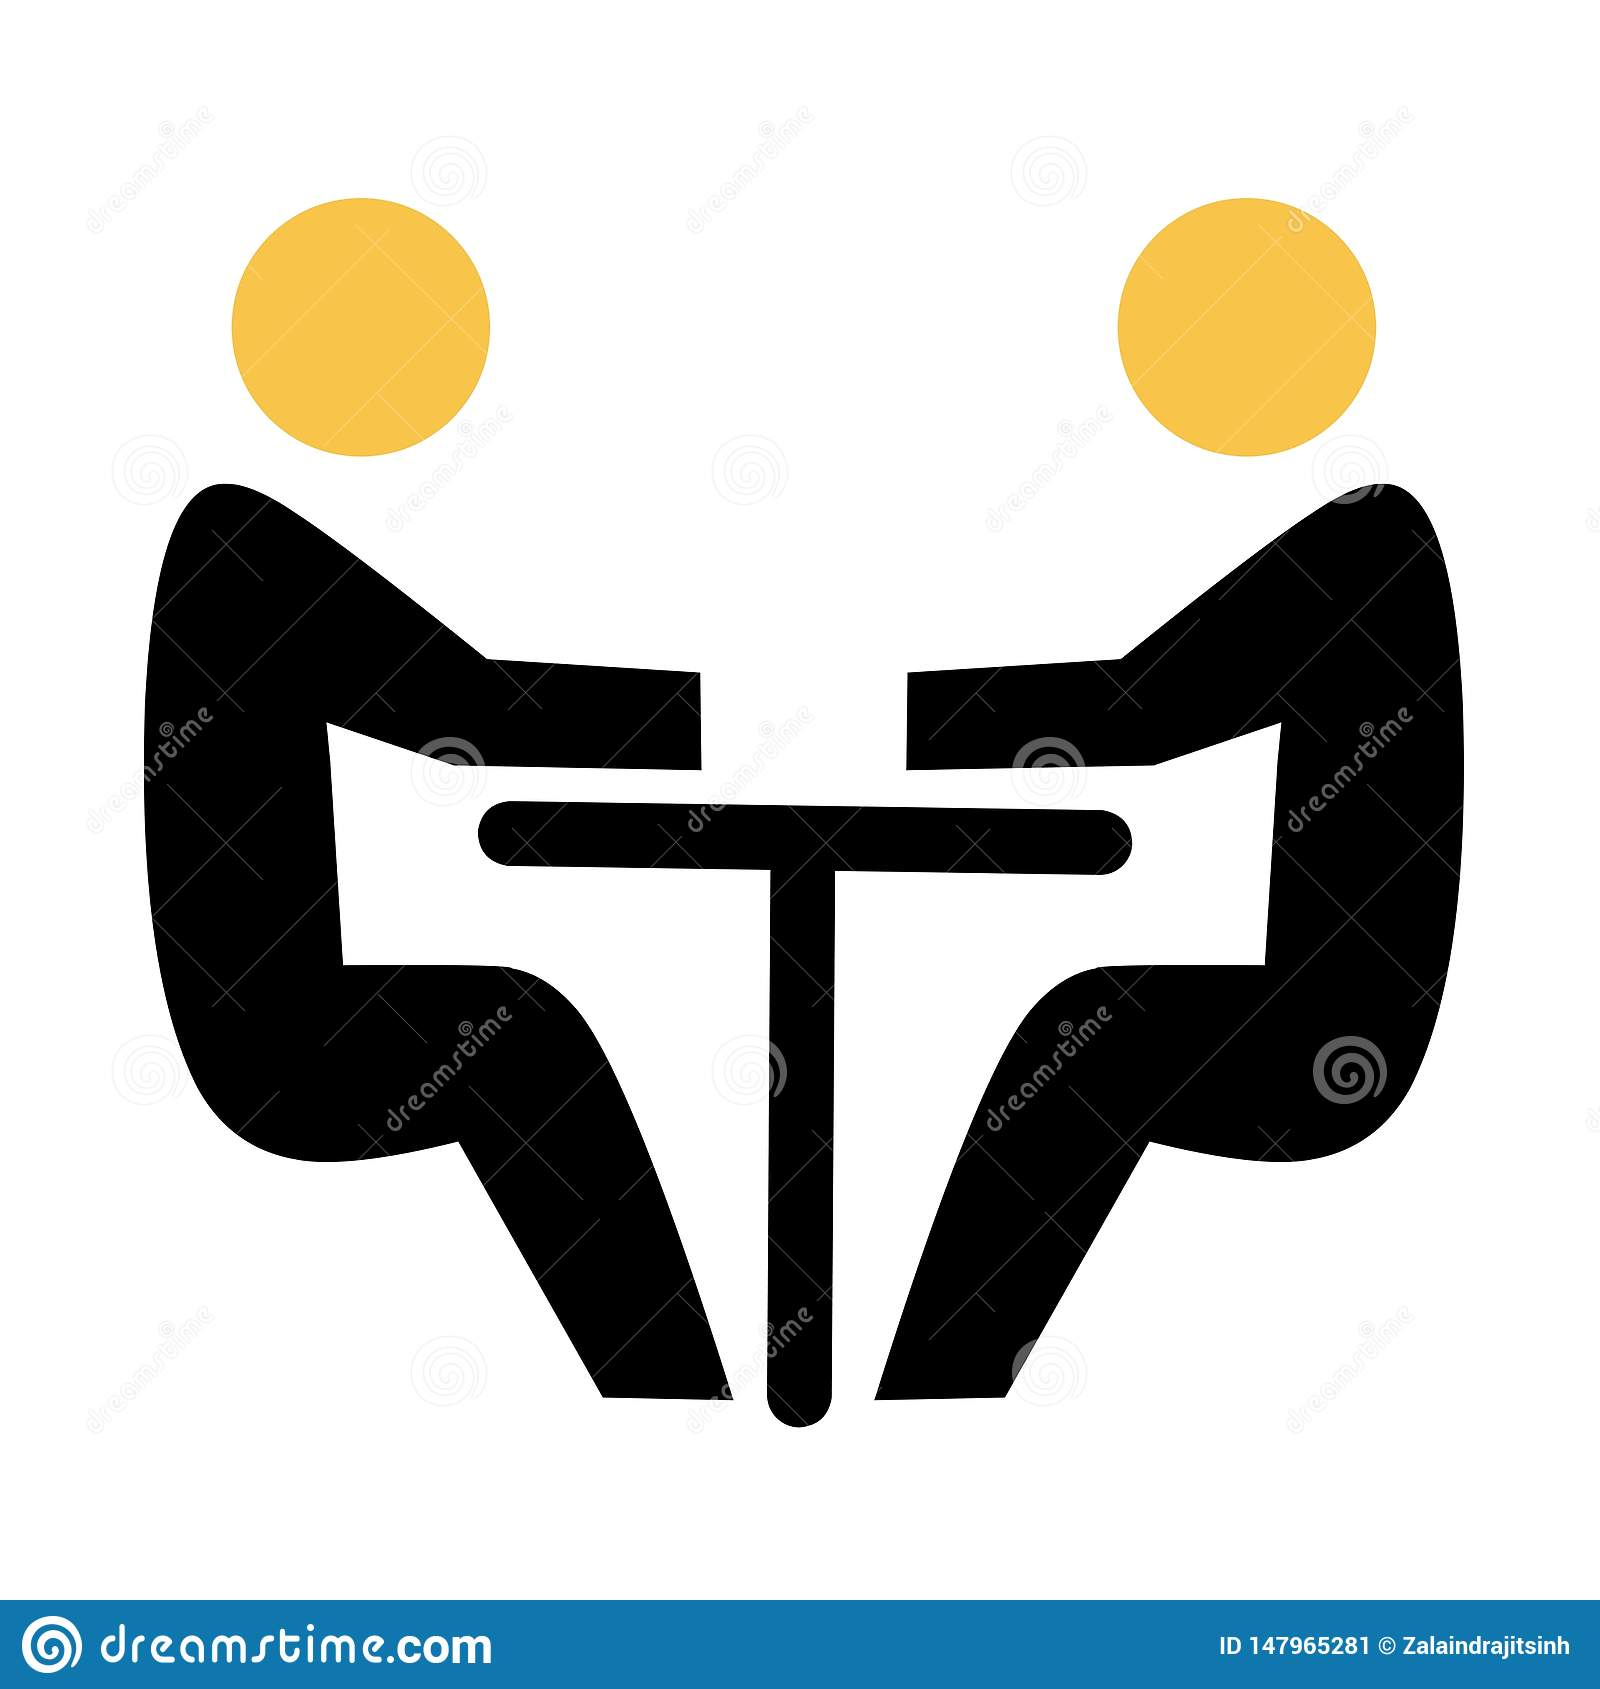 Two abstract people sitting at a table. Team business meeting with teamwork and collaboration flat icon